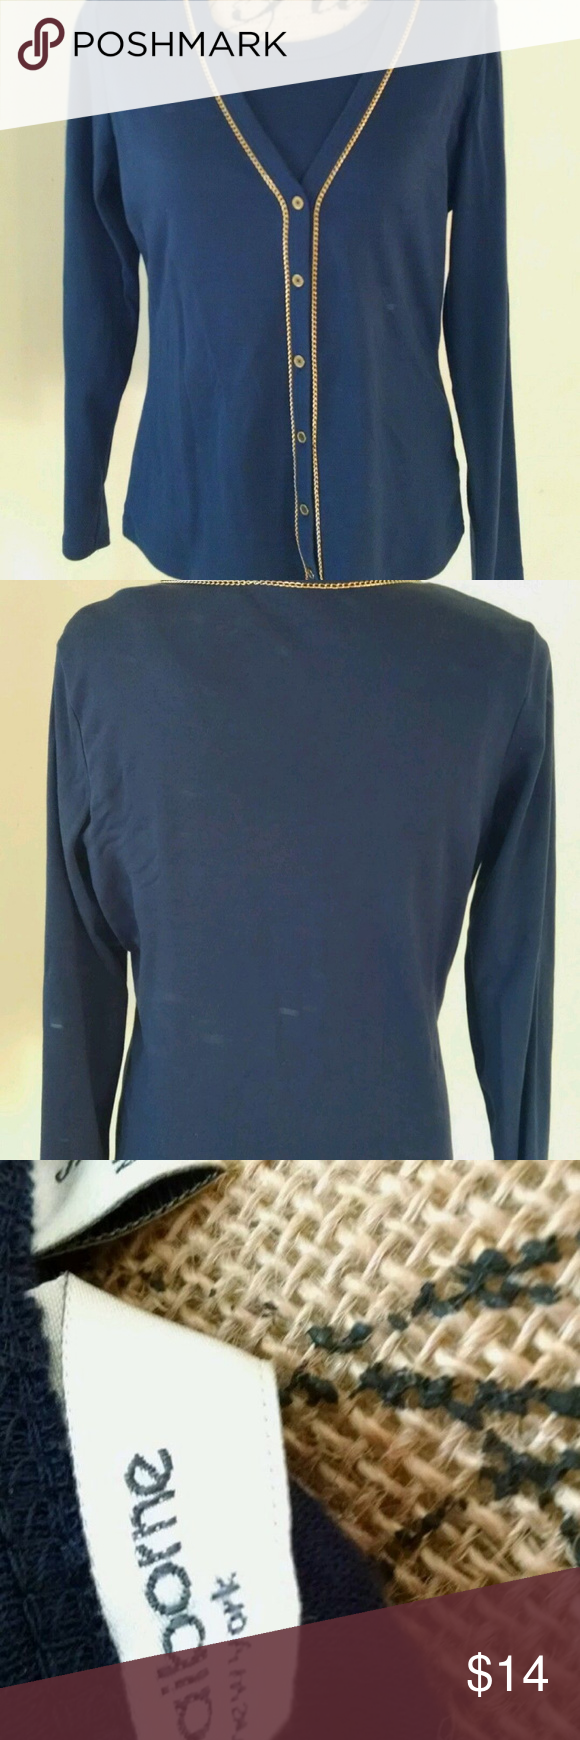 Liz Claiborne Navy Blue Two Piece Sweater Set Sm | Liz claiborne ...